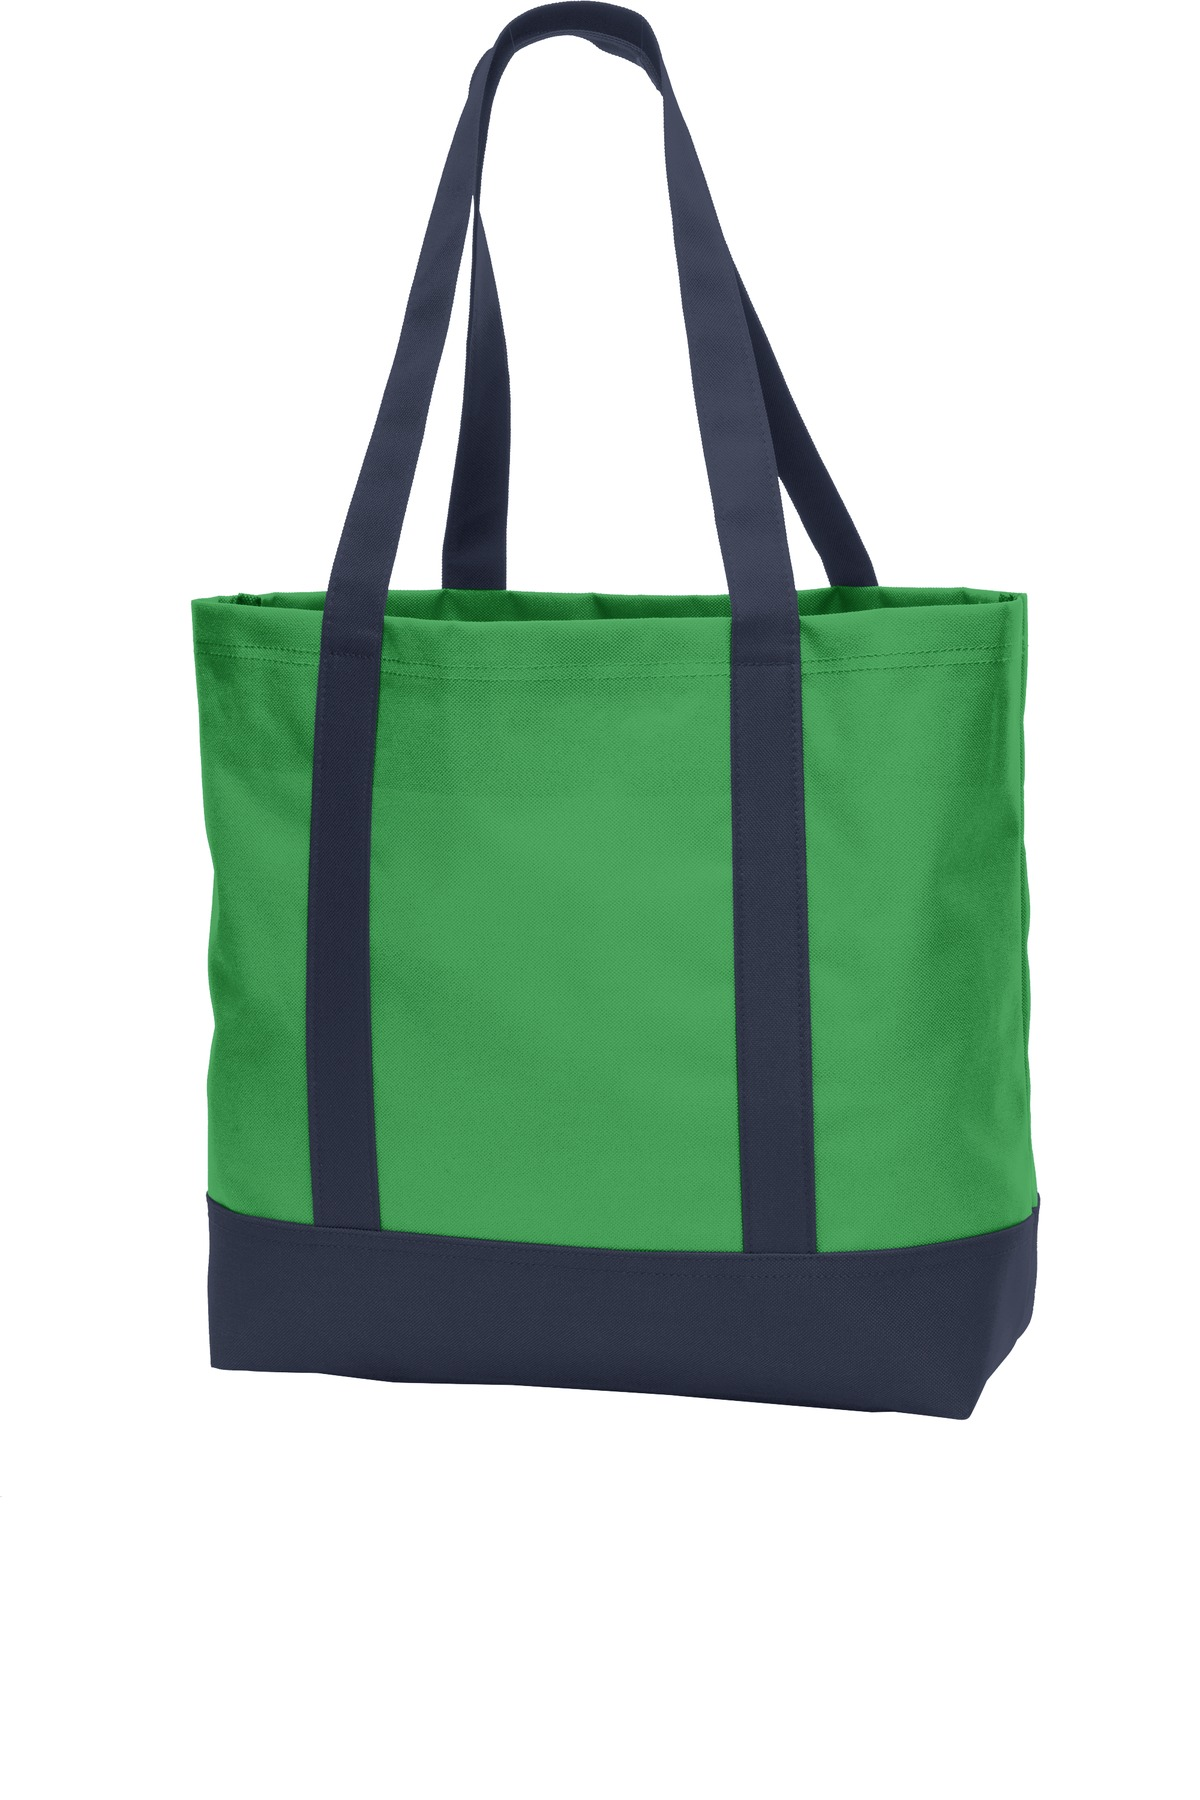 click to view Classic Green/ Navy